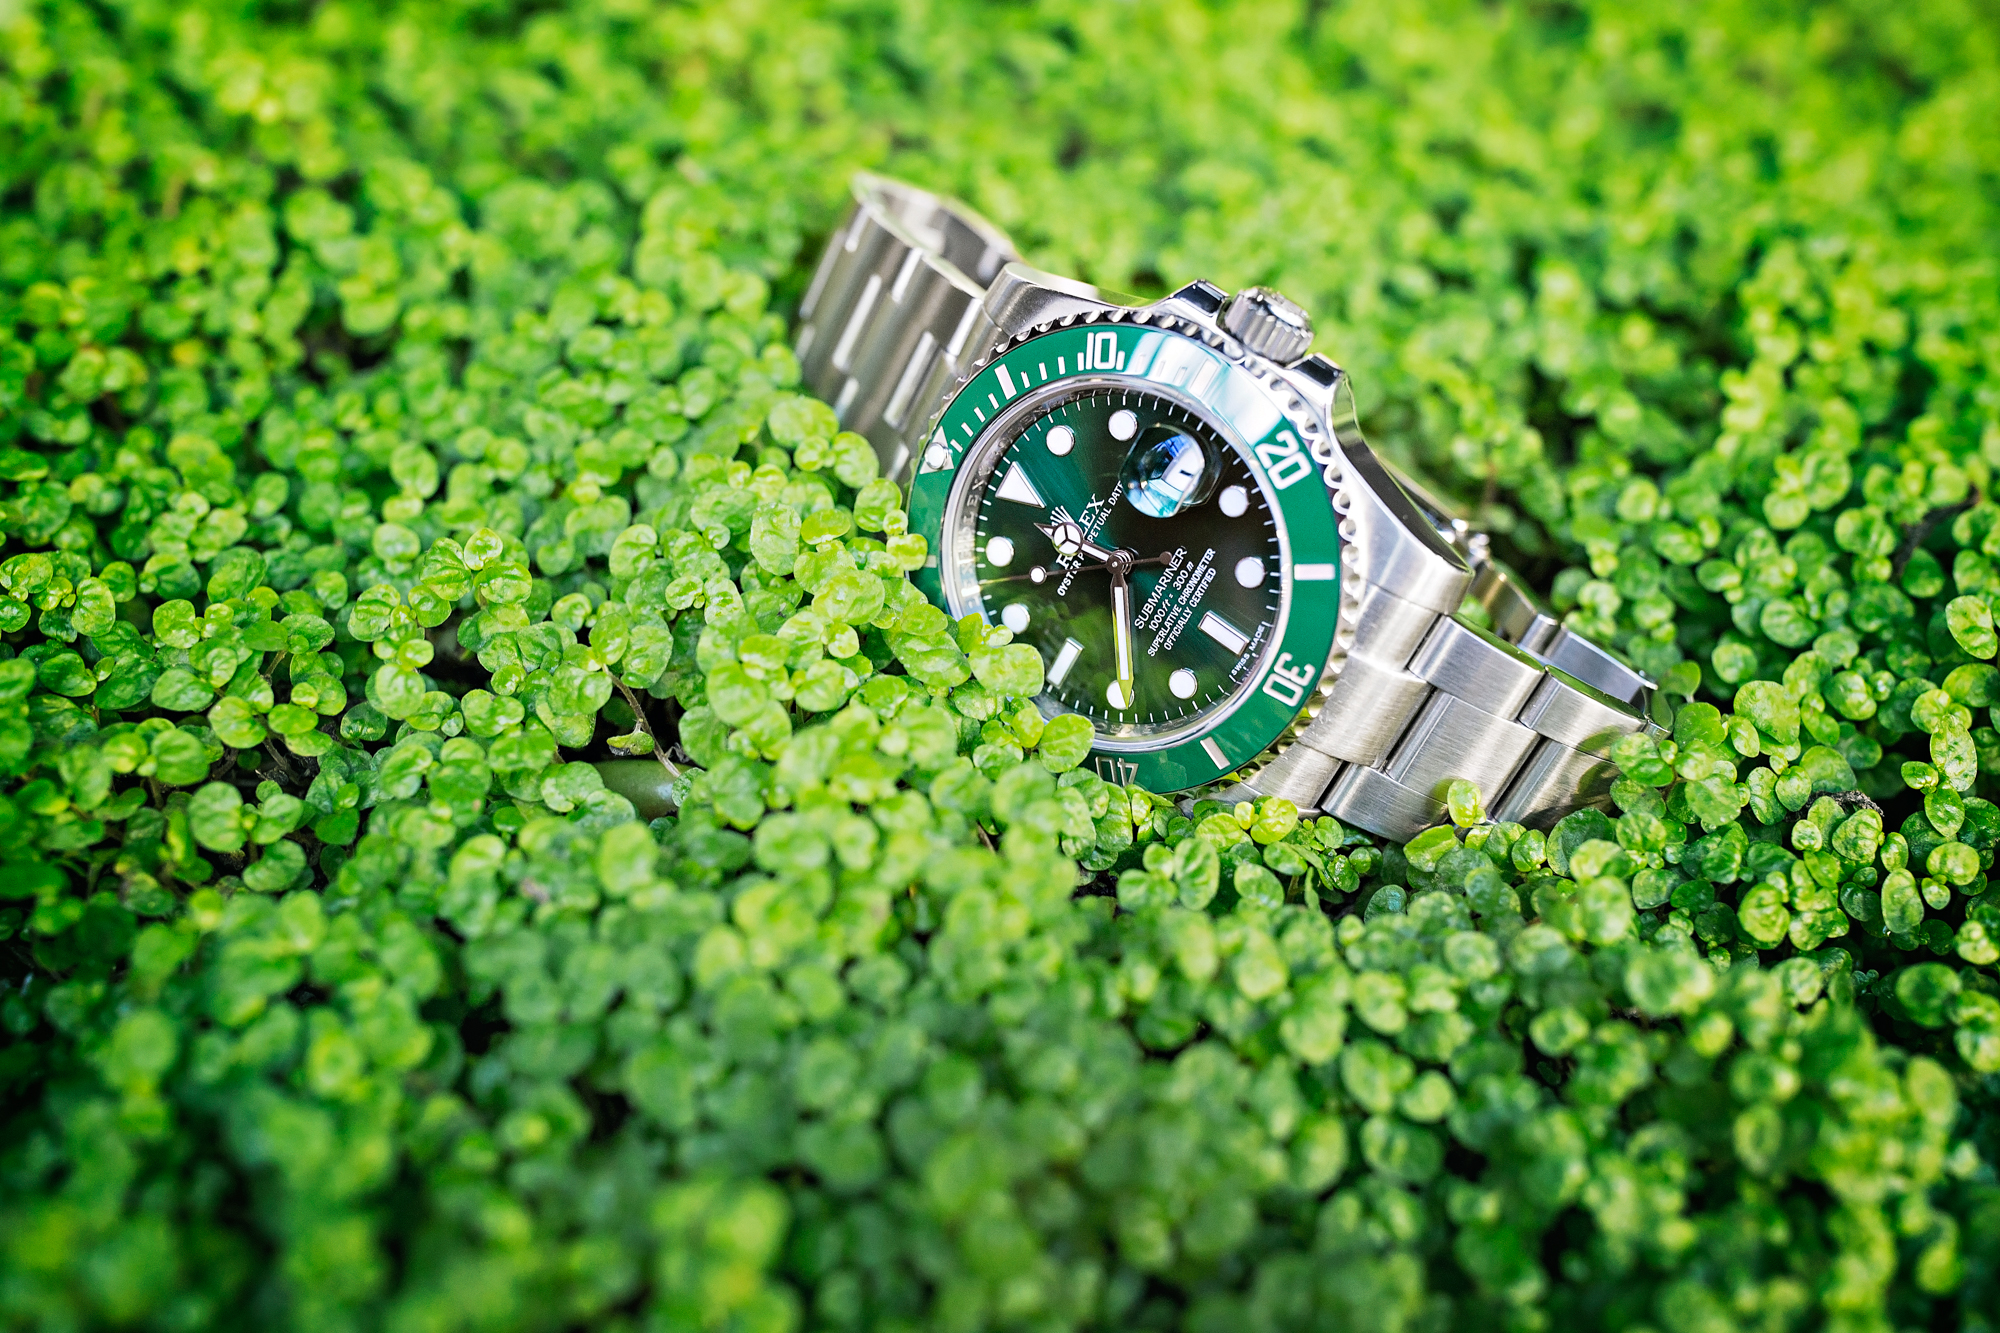 Some people love the Hulk as it is a special edition of a Submariner.